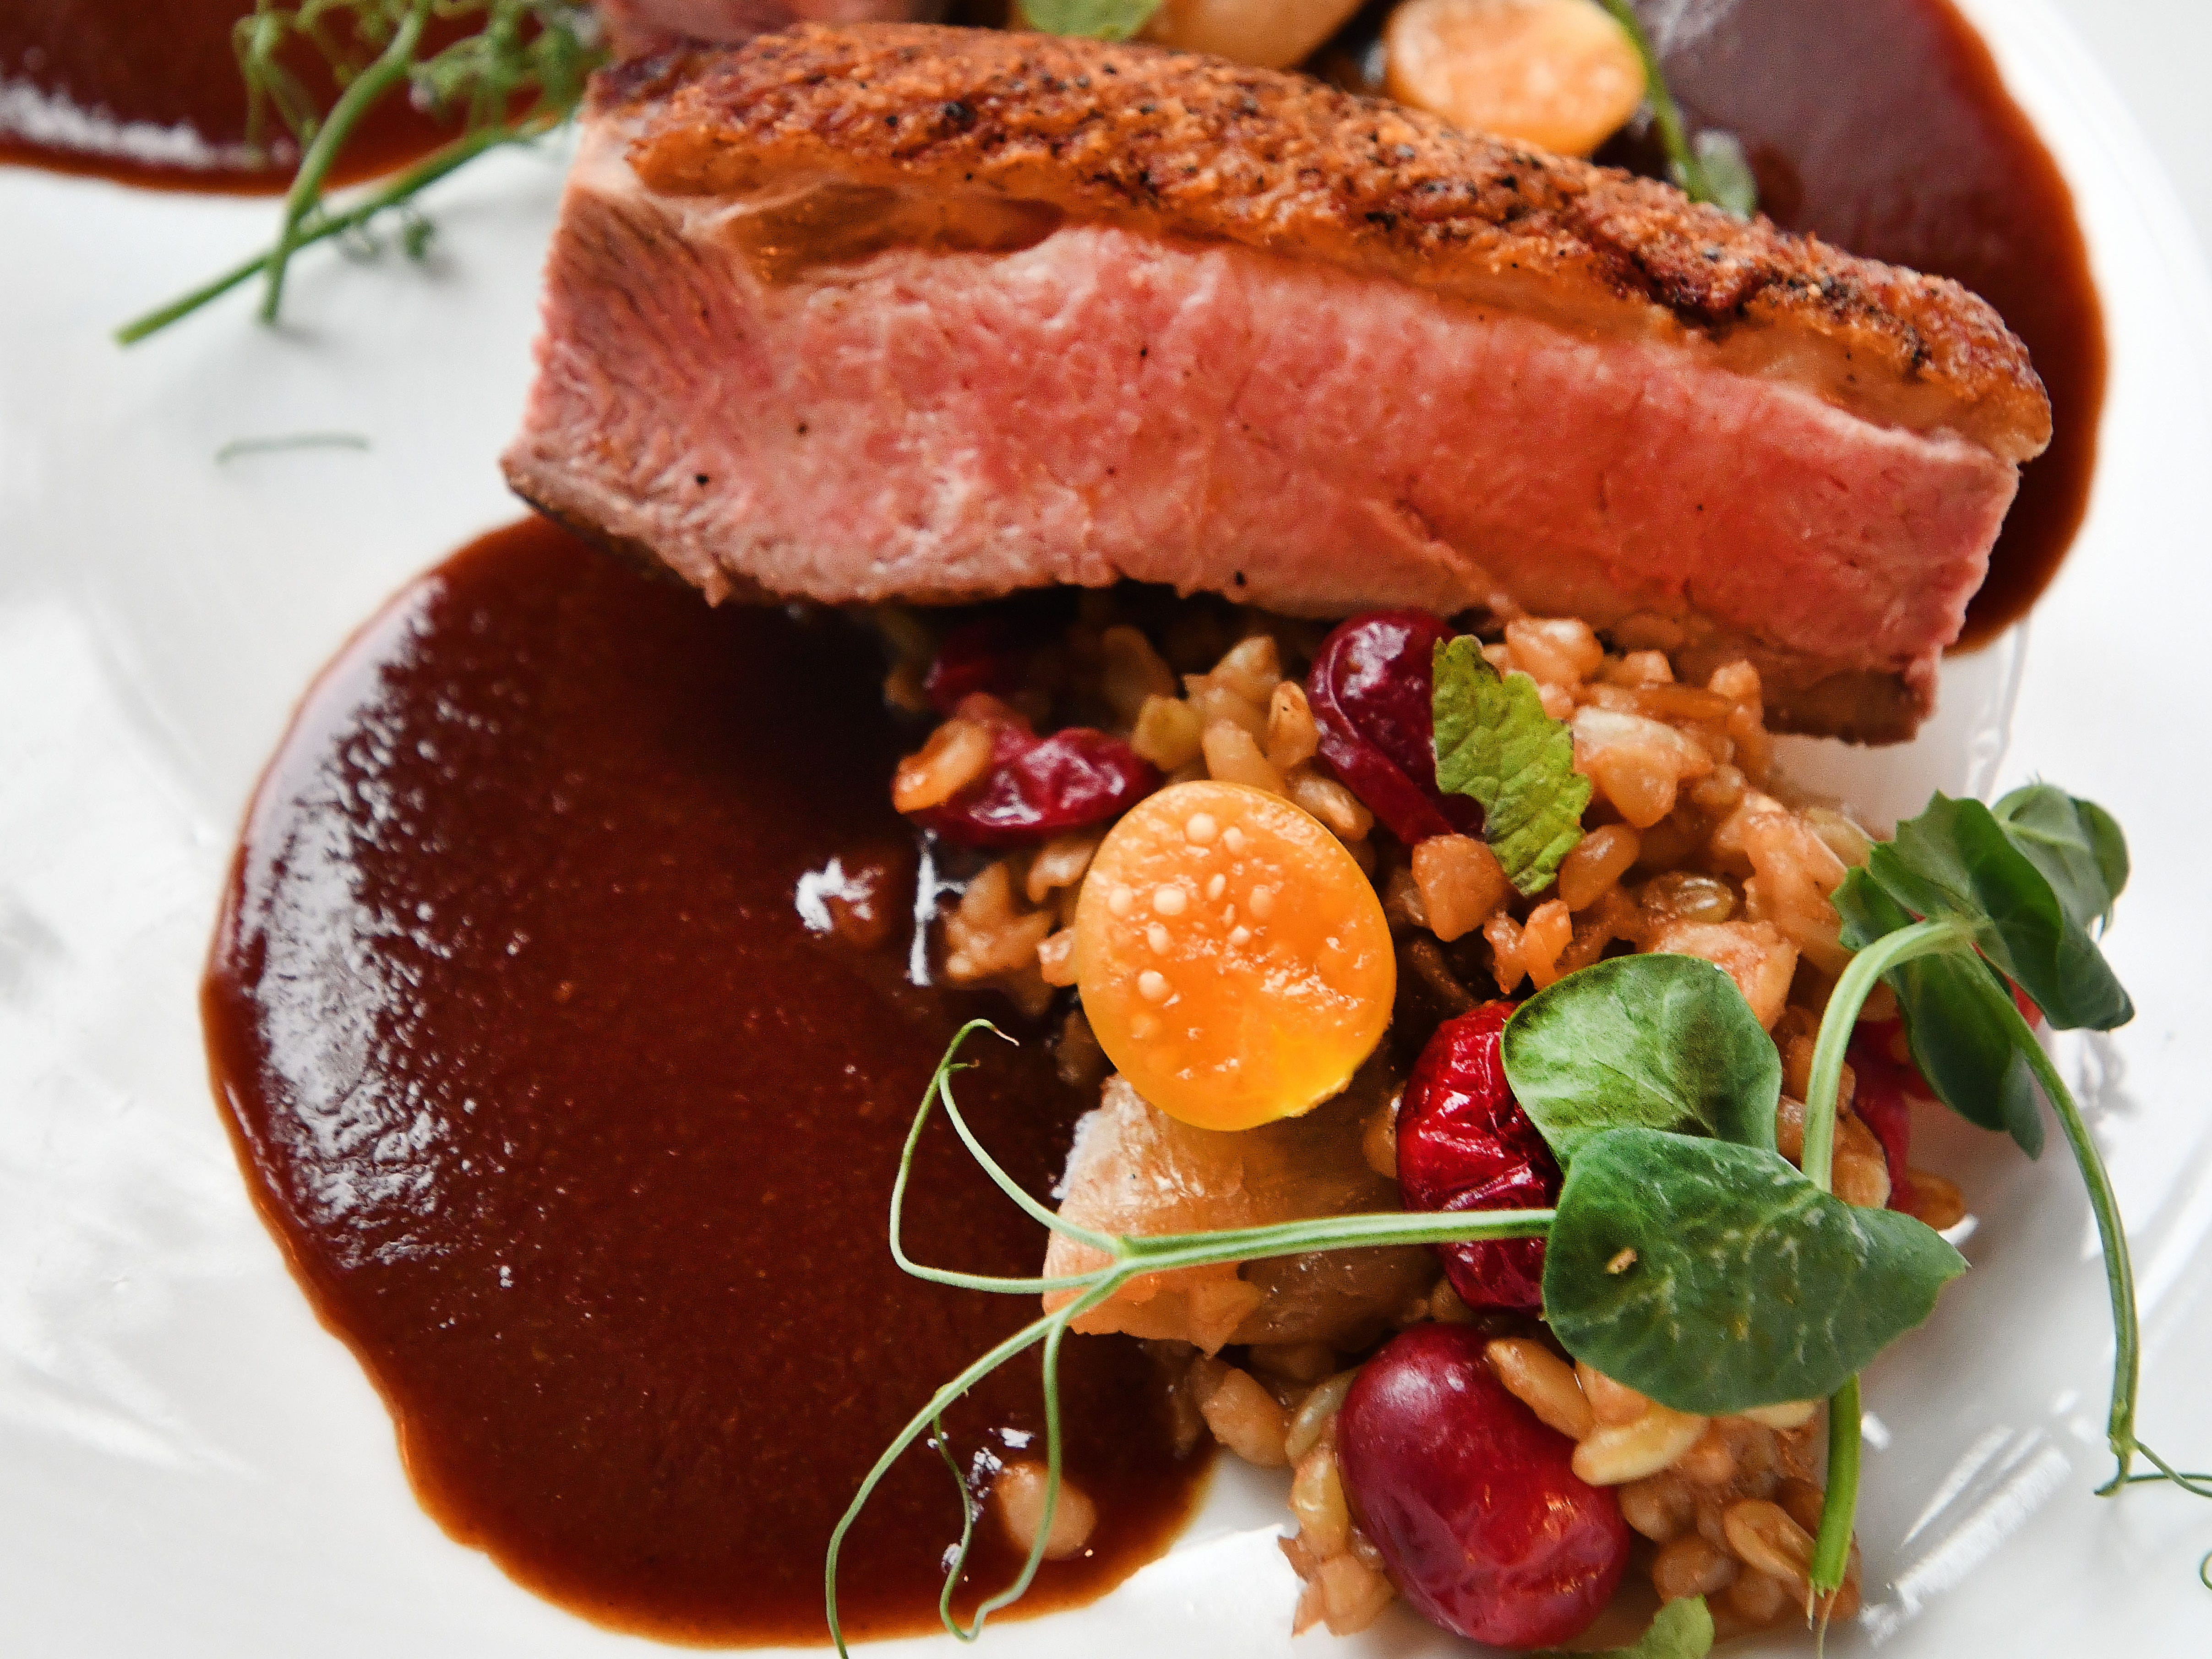 Rohan duck breast consisting of farro verde, mushroom, gooseberry, anise, cranberry and jus.